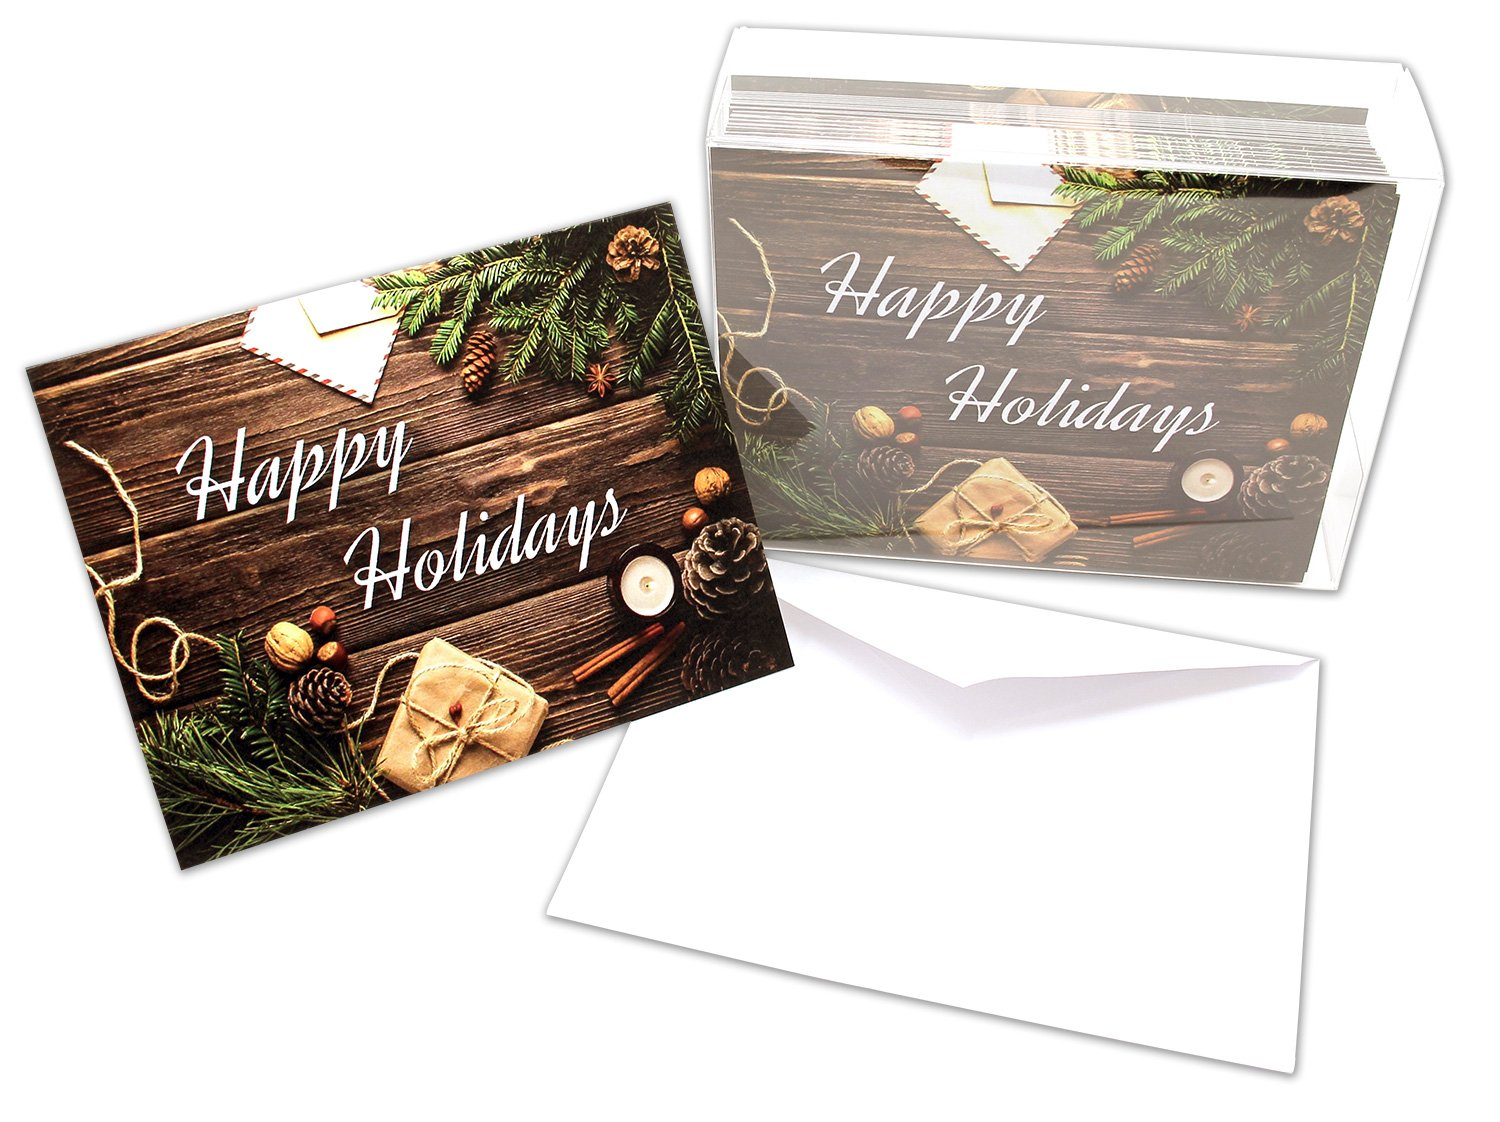 Blank Inside Funny Festivus Holiday Greeting Cards Boxed Set of 8 Holiday Notecards with Recycled Envelopes